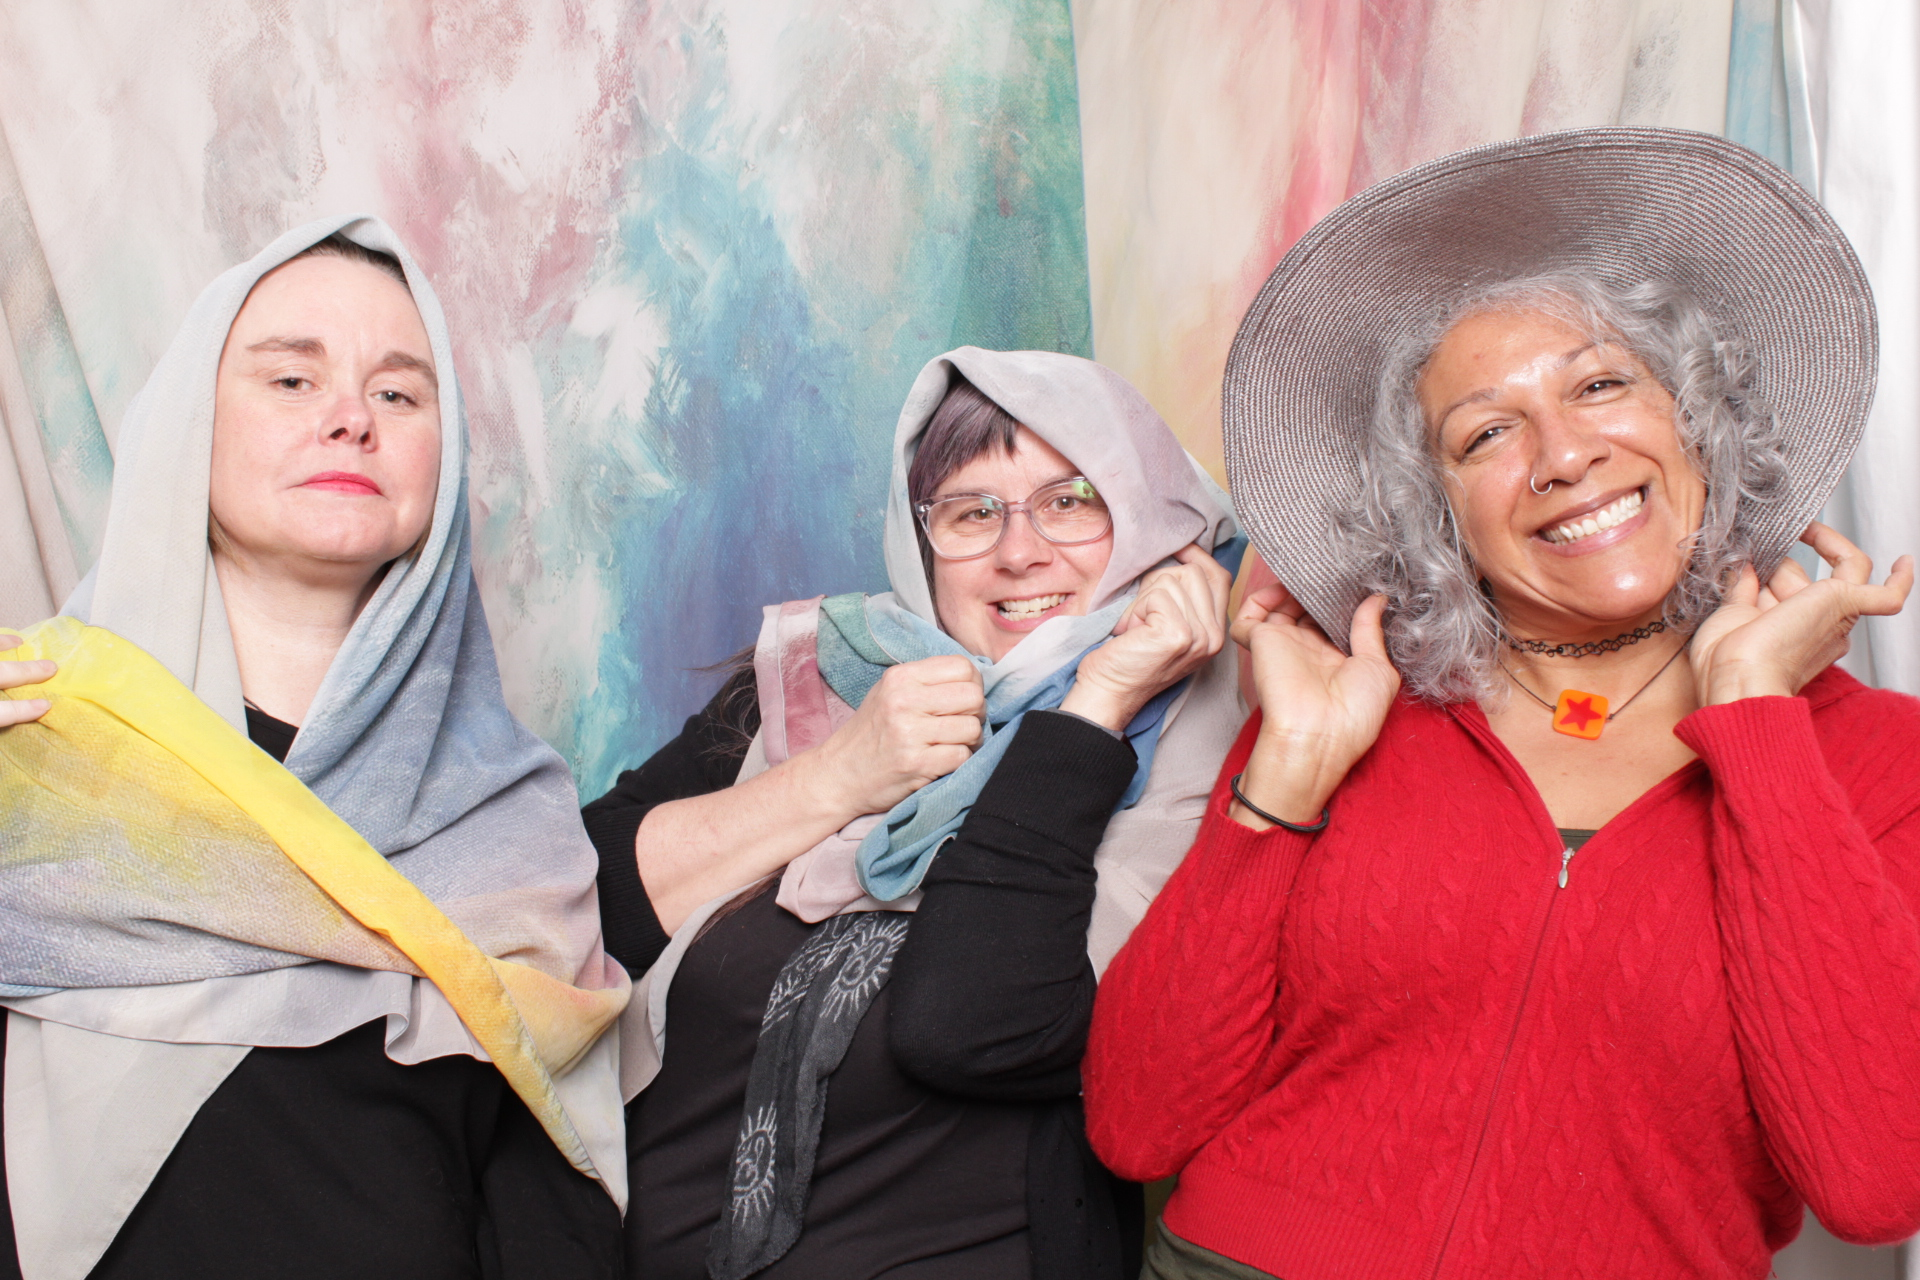 Minneapolis_Photo_Booth_party_rentals (17).jpg